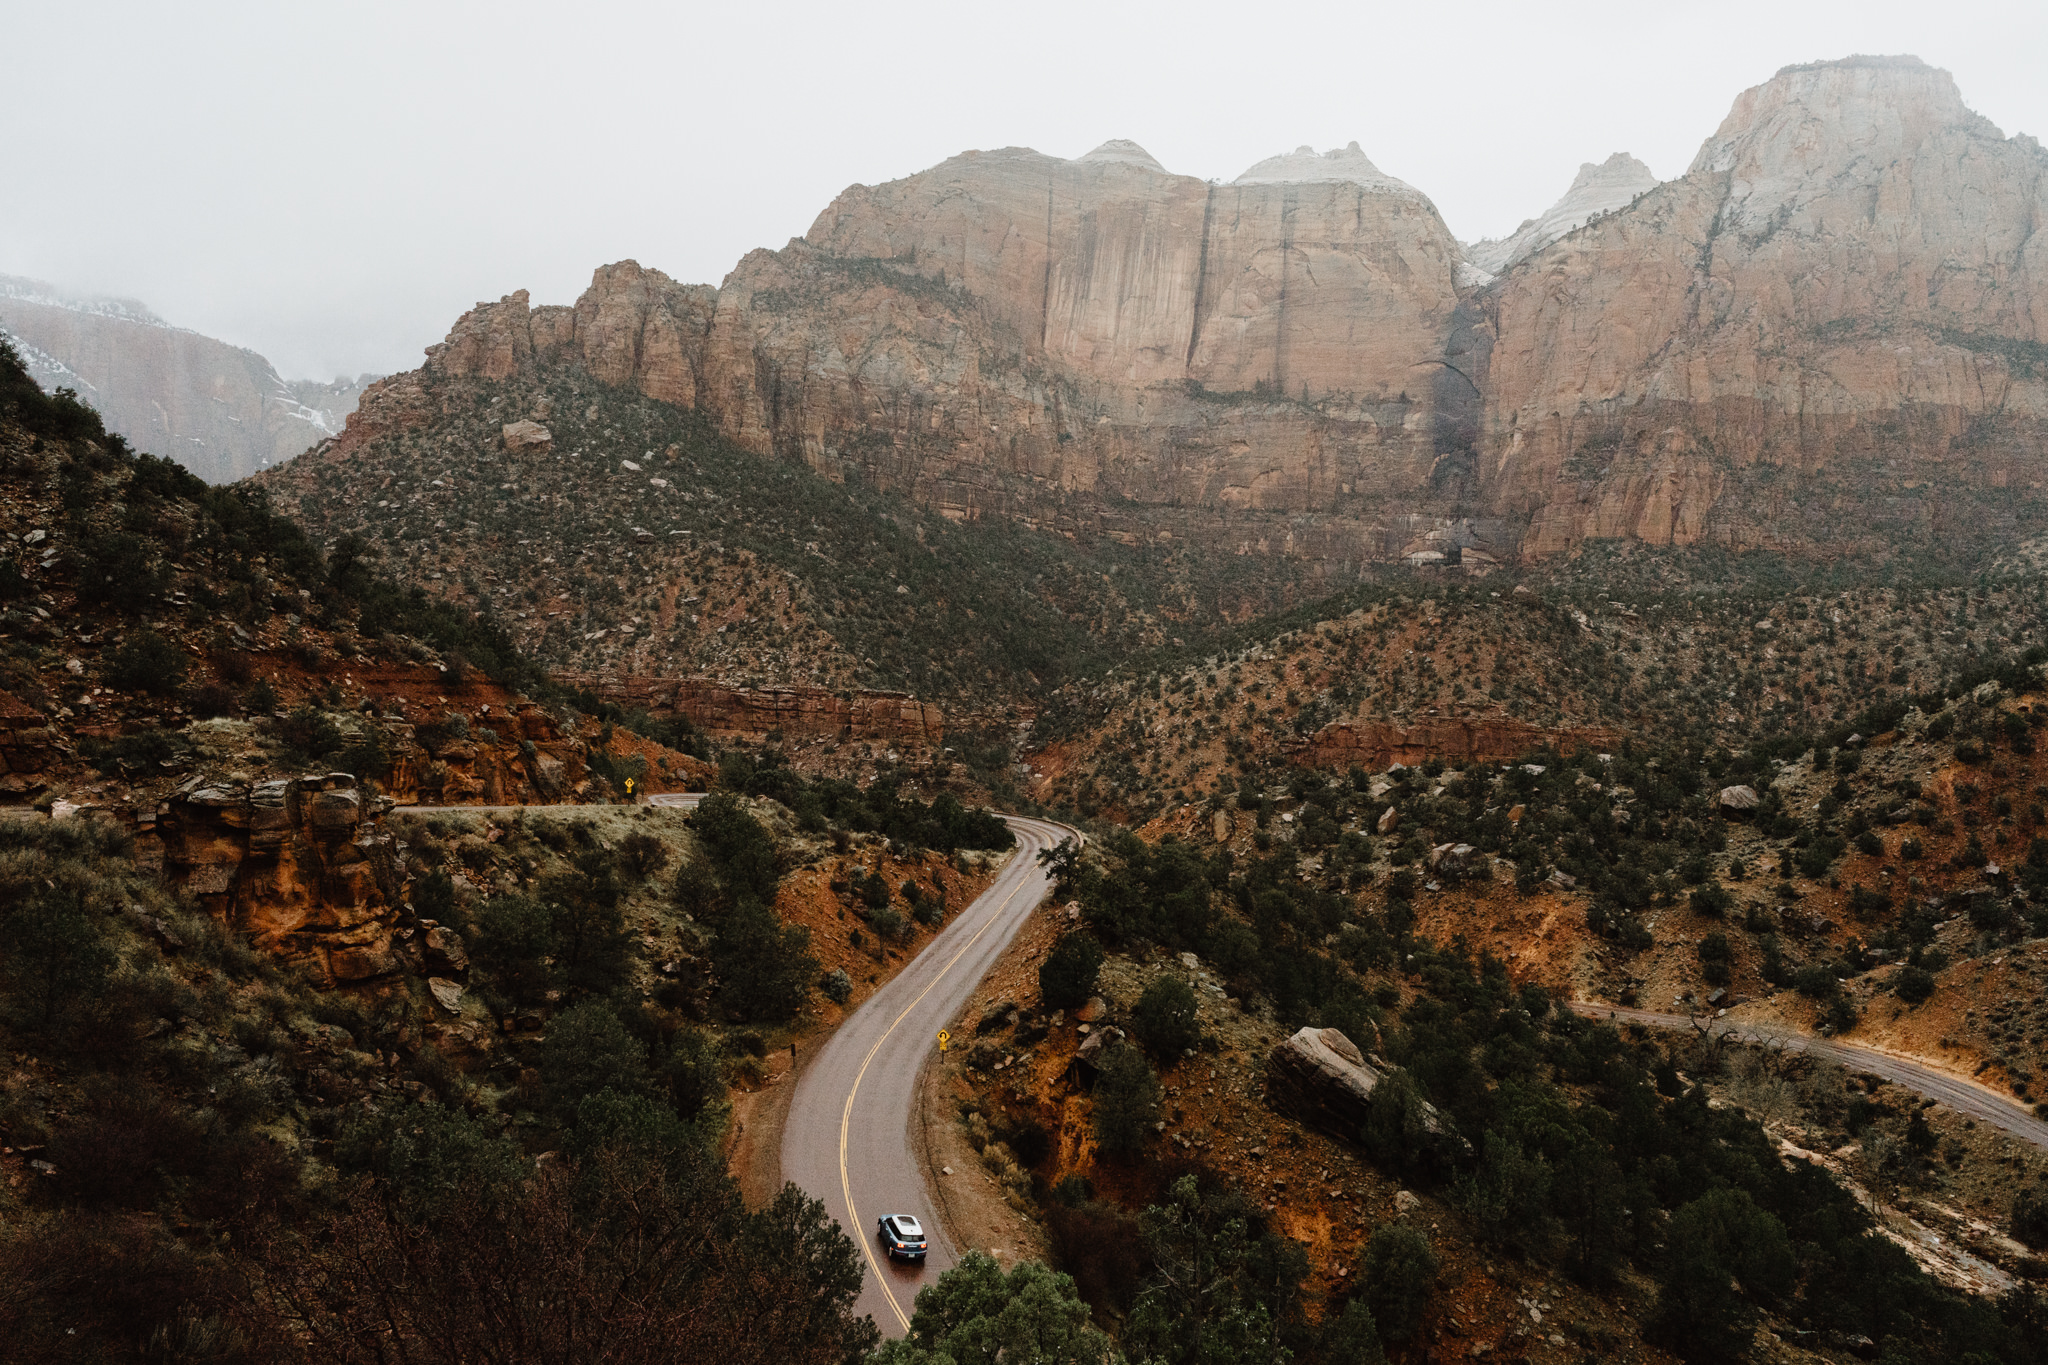 MINI USA  | Desert Roadtrip  This project with MINI USA took us on an epic 6 day road trip through Zion, Joshua Tree, & Death Valley to photograph the 2016 Clubman as we journeyed through these stunning locations.